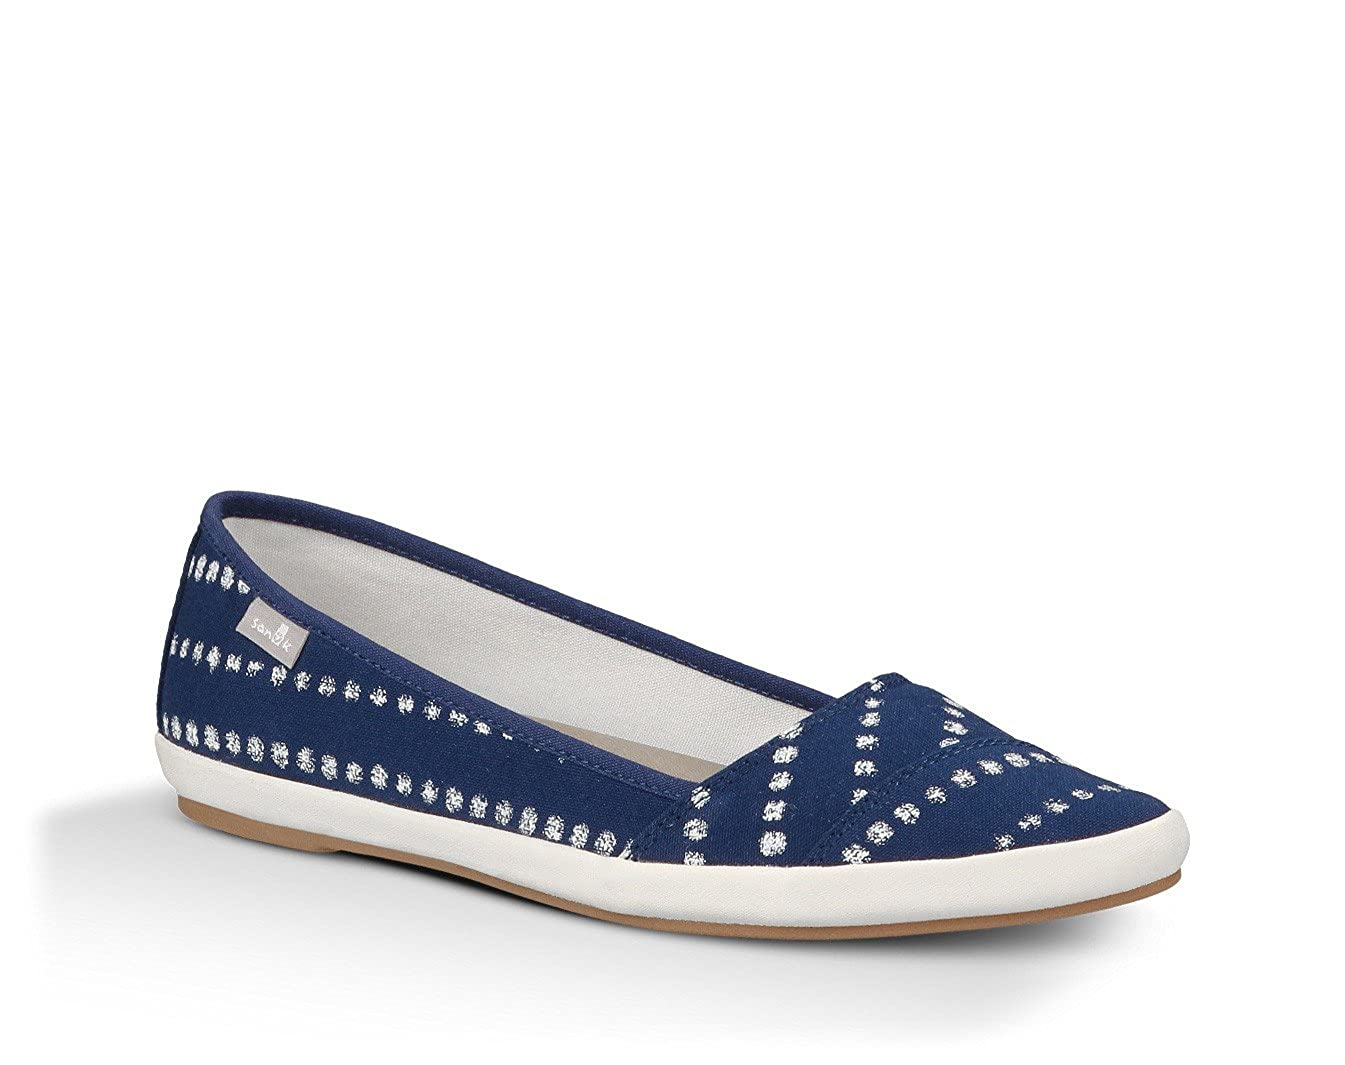 Sanuk Womens Kat Prowl Prints Slip-On Loafer Indigo White Dots 5 B(M) US   Buy Online at Low Prices in India - Amazon.in fc366a6eb